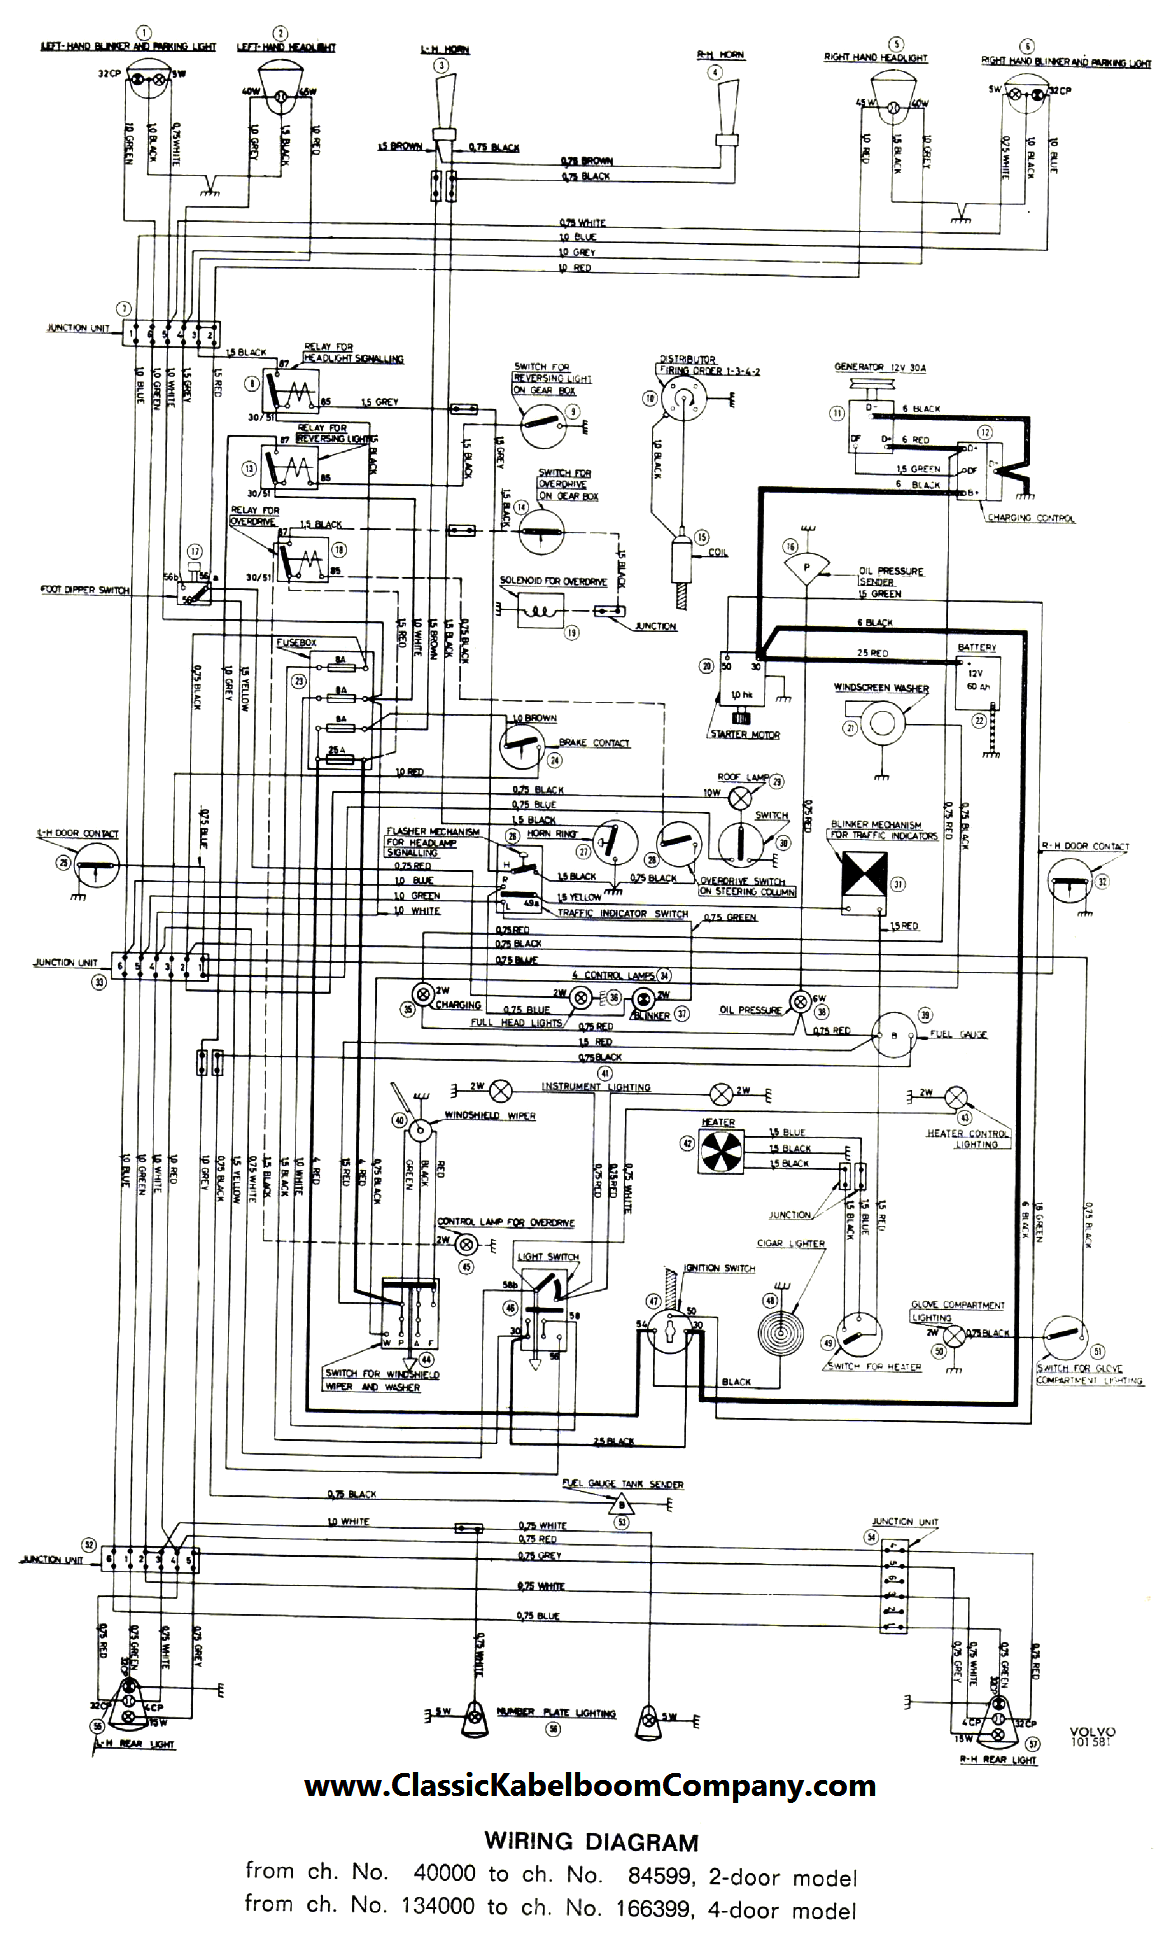 M45 Fuse Diagram Great Design Of Wiring 2009 Ford Expedition Infiniti Box 21 Images 2012